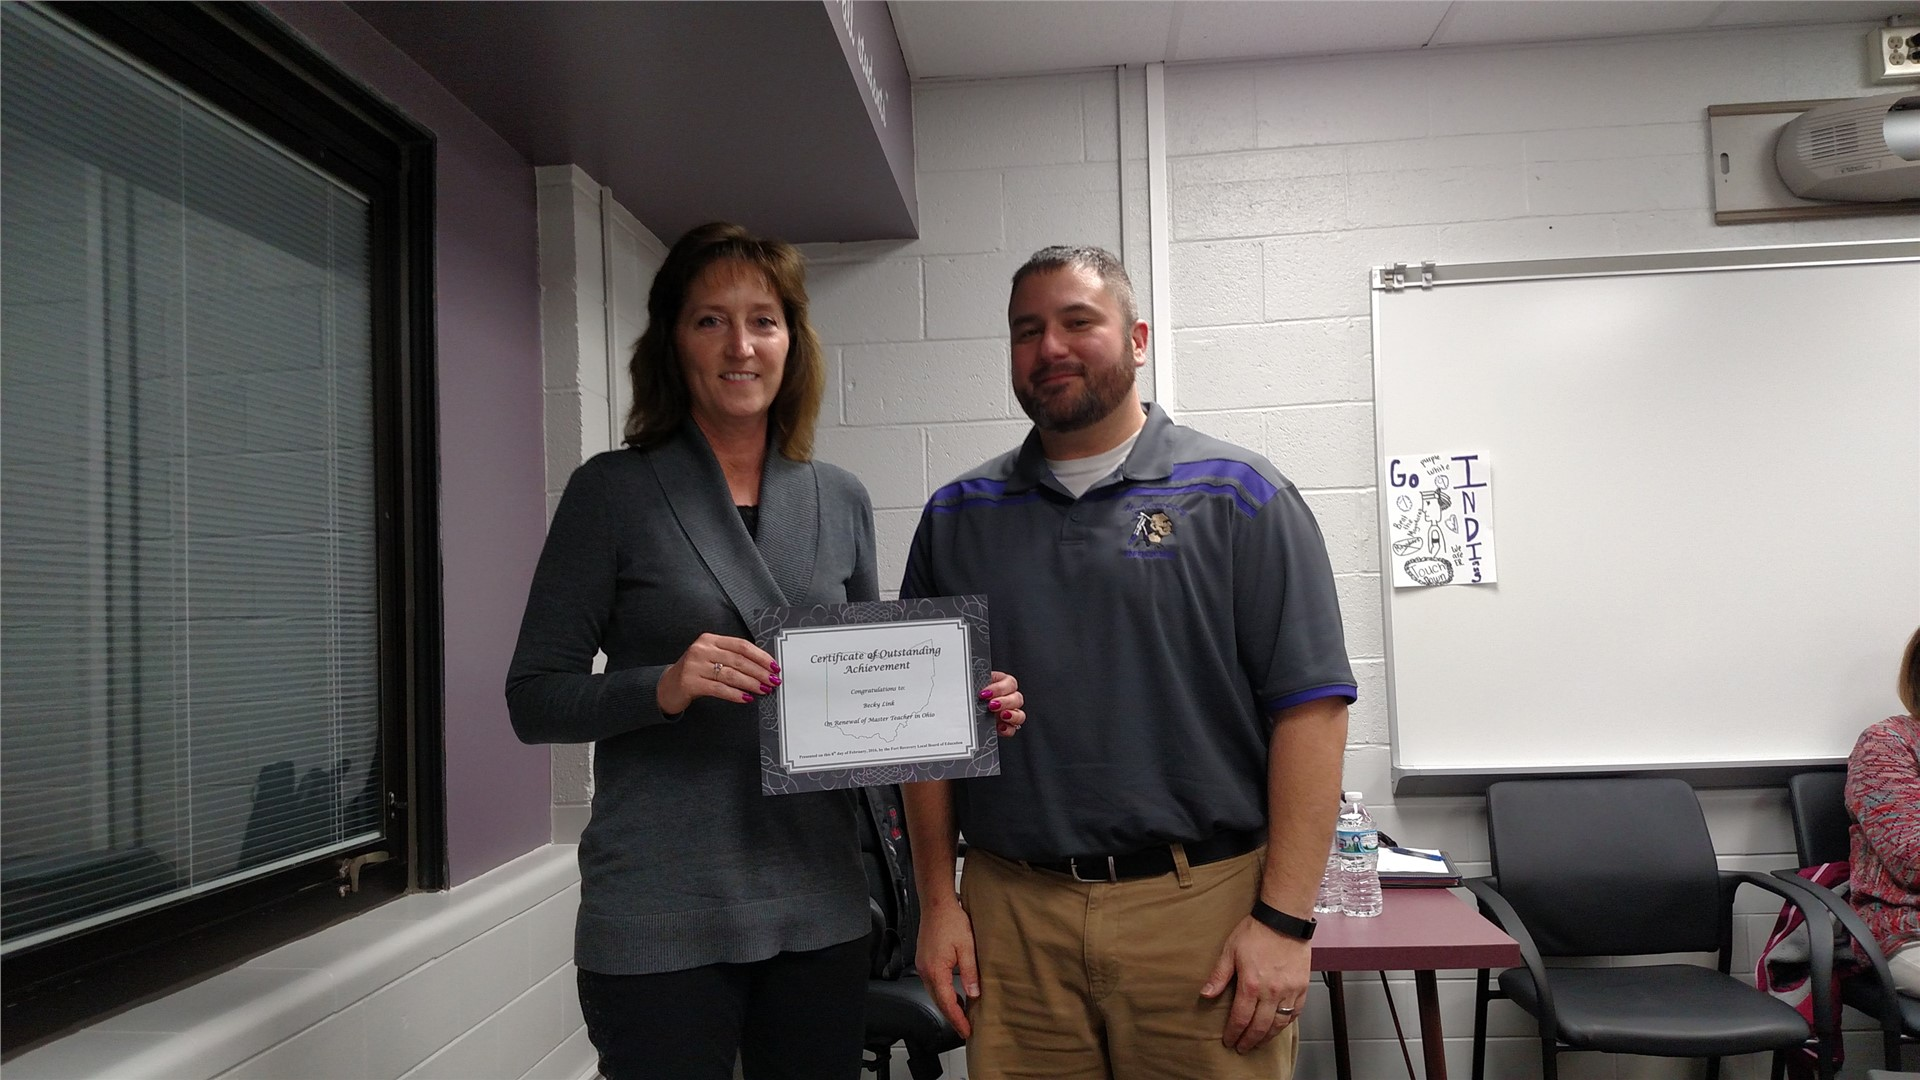 Mrs. Rebecca Link was recognized for earning the designation of Master Teacher in the State of Ohio